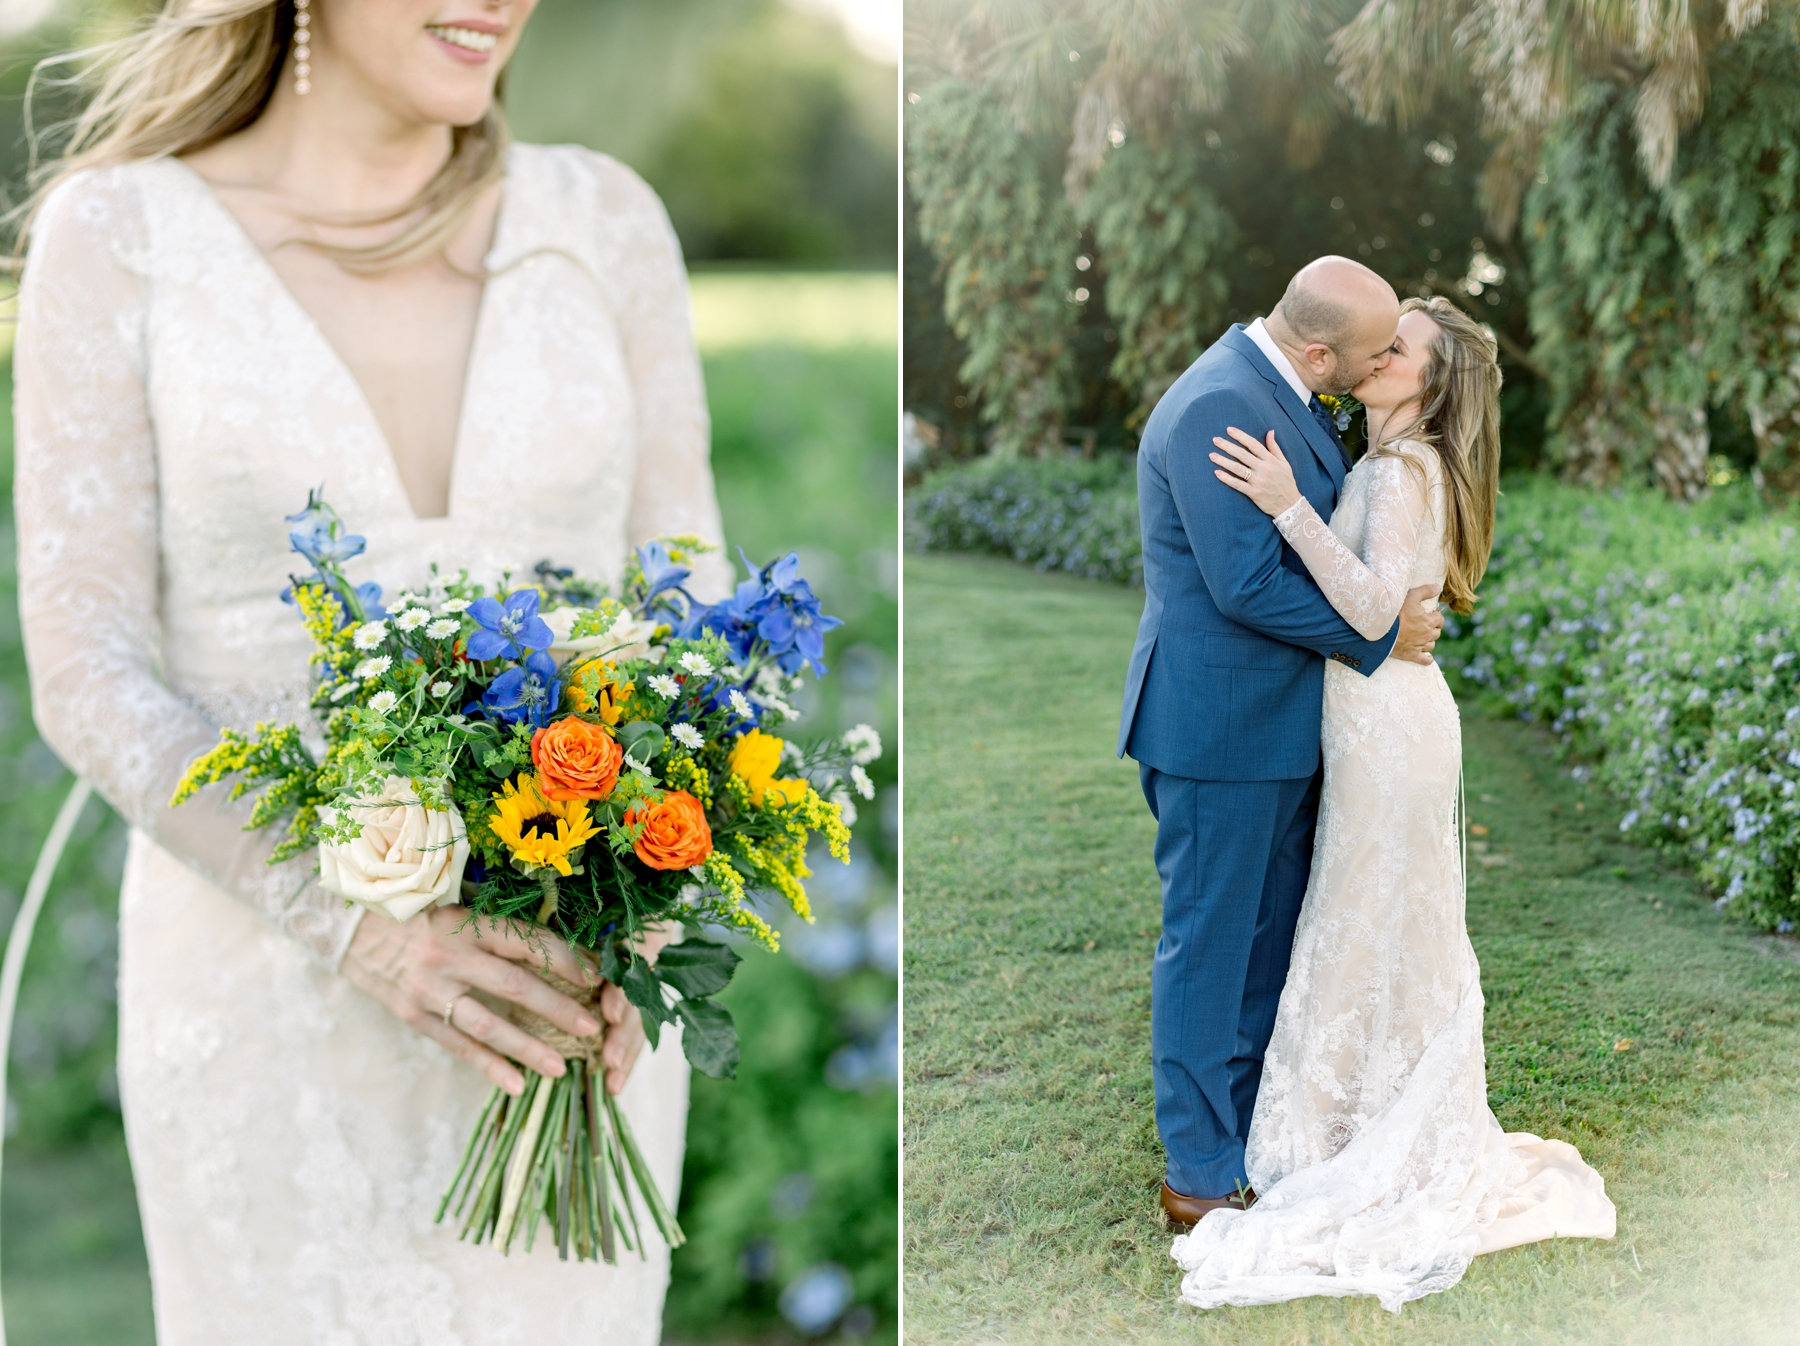 Winter Springs Florist wedding photography